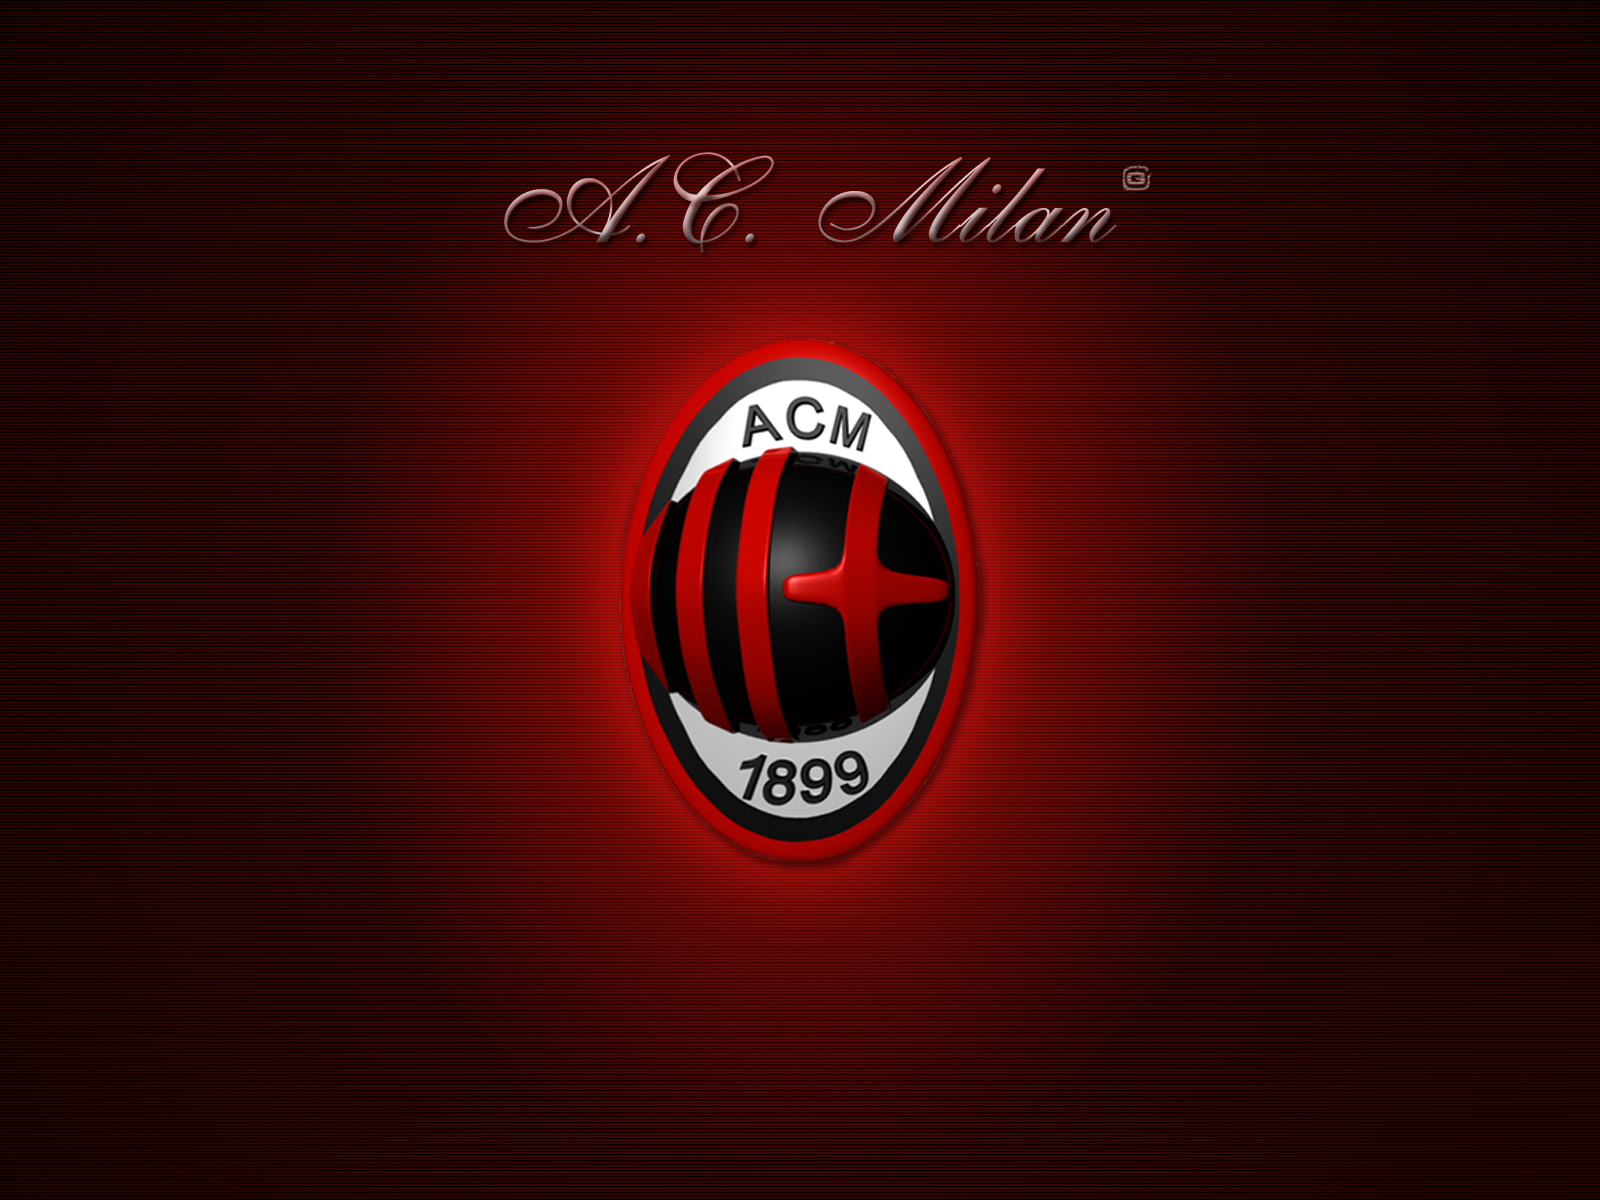 http://3.bp.blogspot.com/-kpkQAgPXTiE/UP1y3lnH6VI/AAAAAAAAFH4/7uCDEXMlZP4/s1600/AC+Milan+Football+Logo+Wallpaper+High+Definition+2013+7.jpg